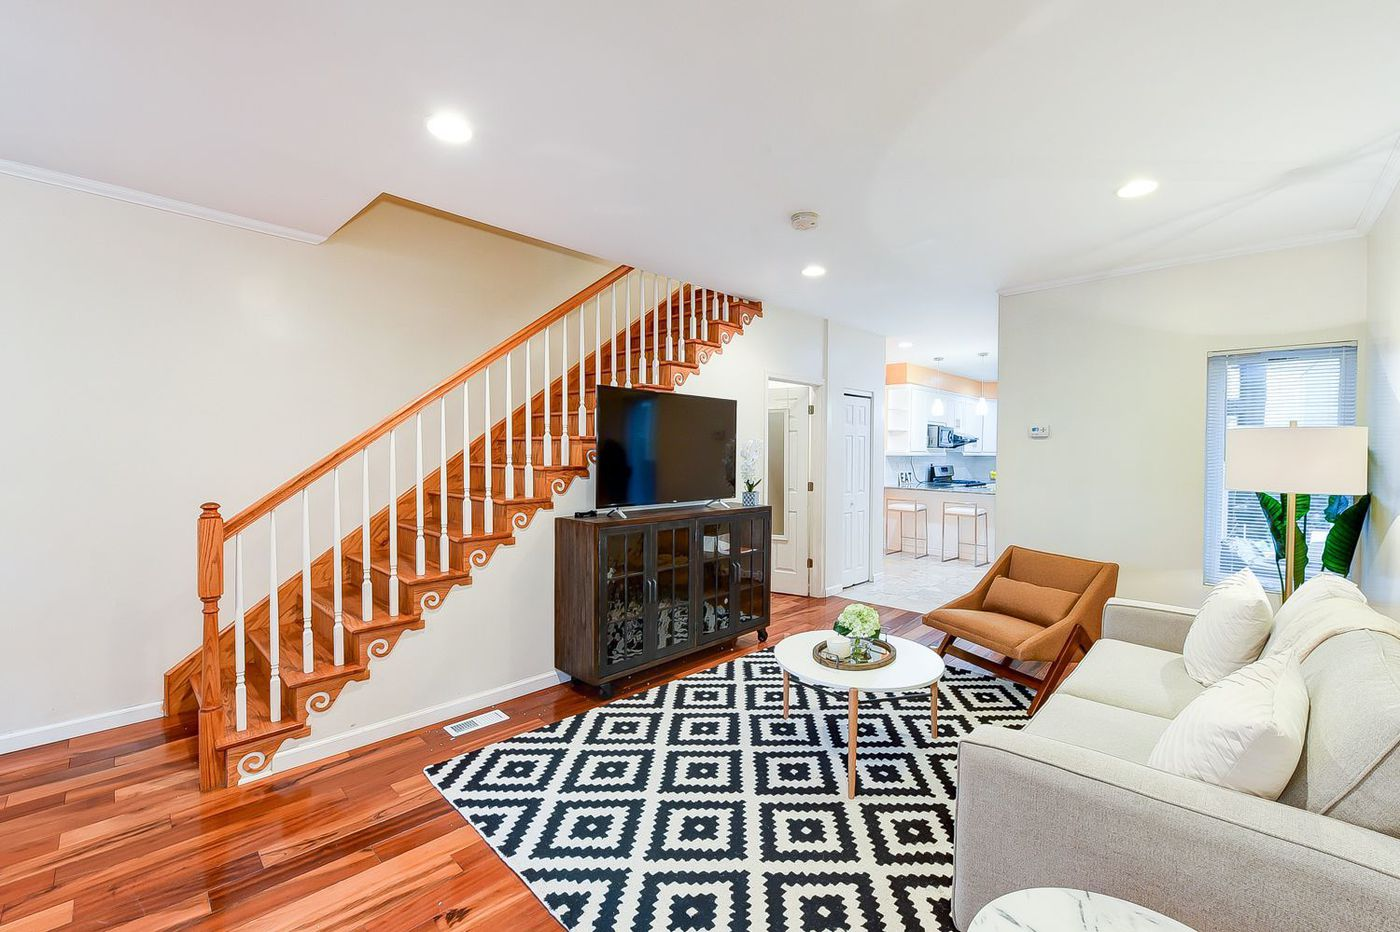 New To Philly Real Estate Start Up Turns Rowhouses Into Mini Co